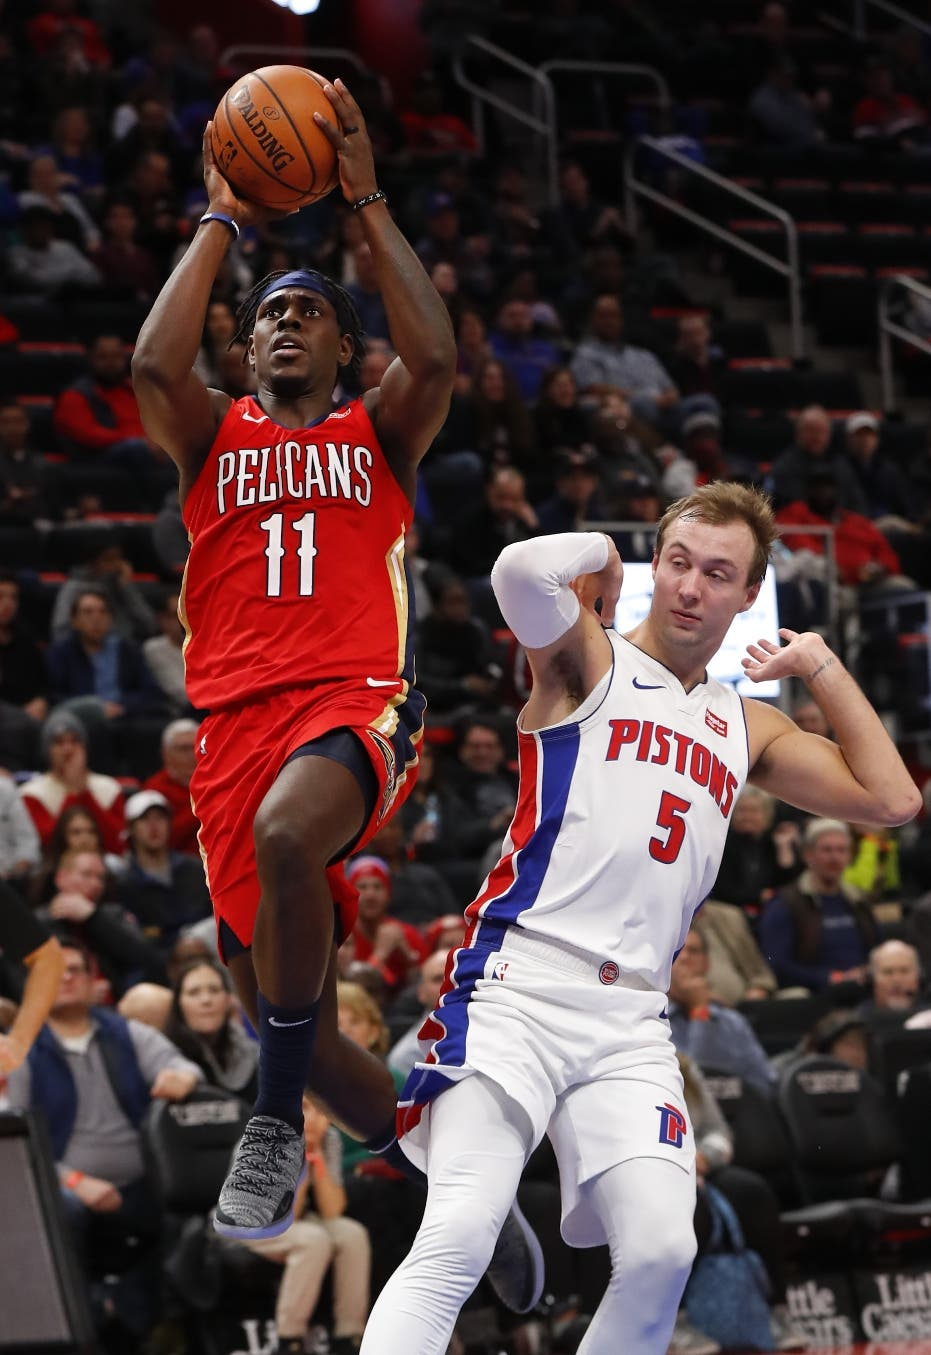 New Orleans Pelicans guard Jrue Holiday (11) drives against Detroit Pistons guard Luke Kennard (5) in the second half of an NBA basketball game in Detroit, Sunday, Dec. 9, 2018. (AP Photo/Paul Sancya)